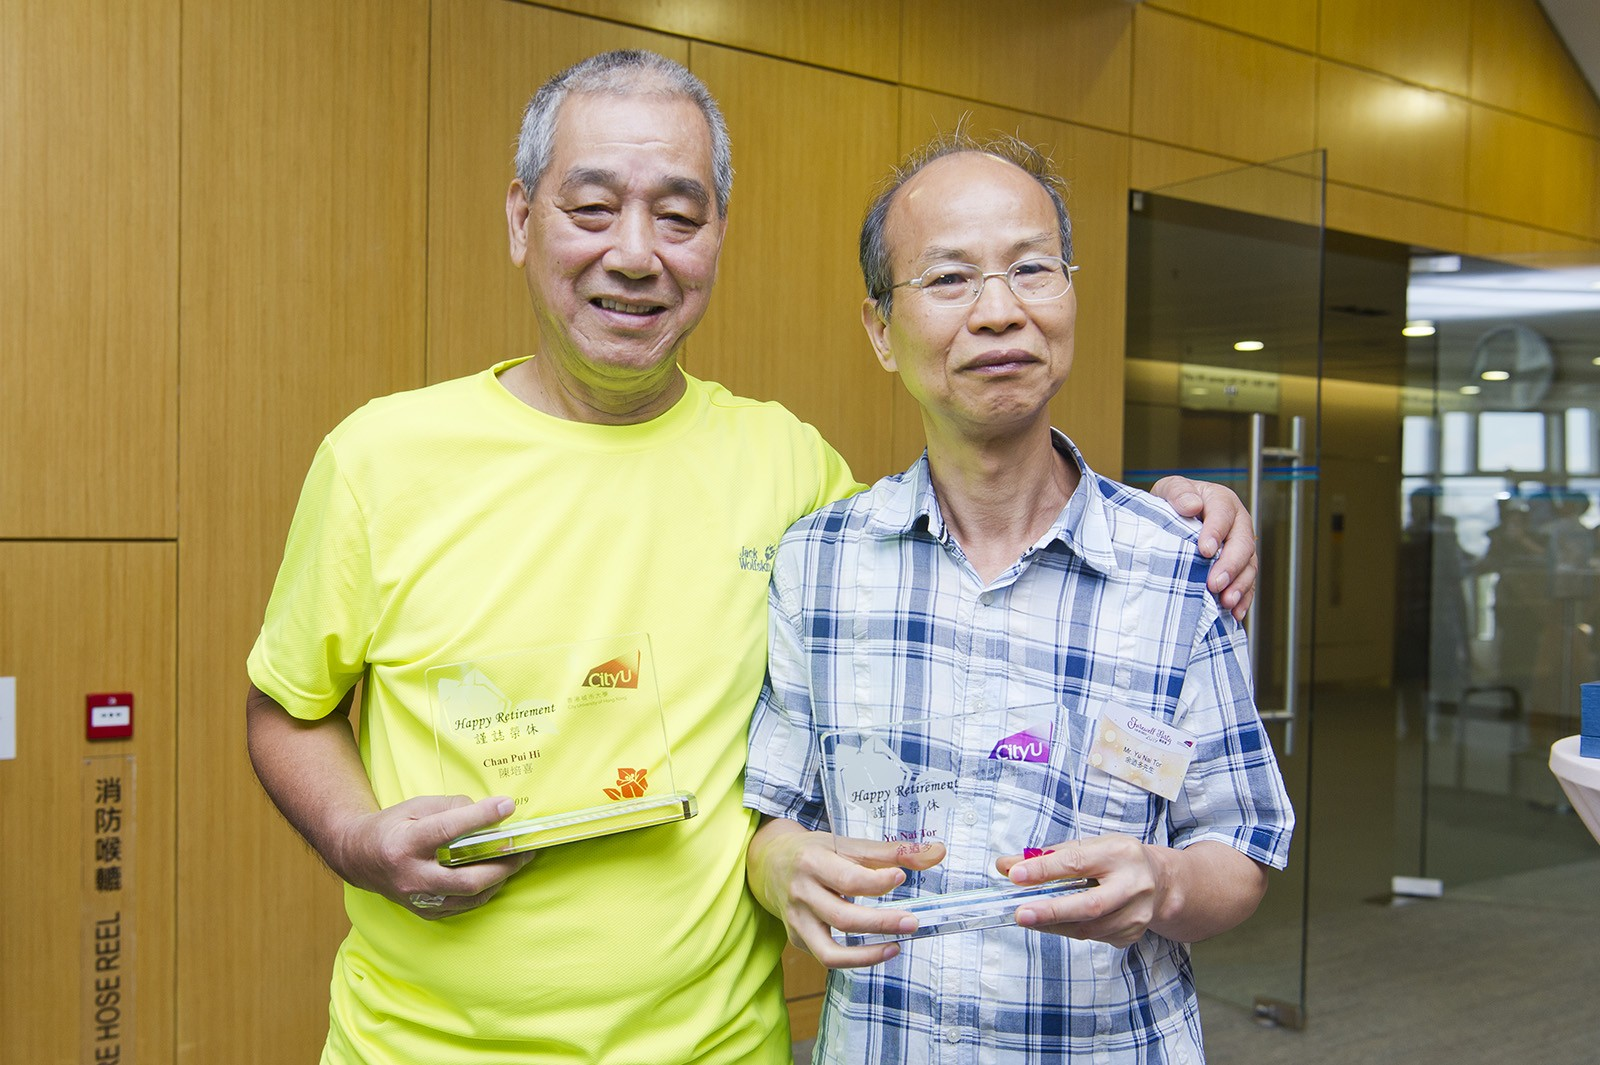 Mr Chan (left) and Mr Yu (right) have both witnessed how CityU has changed over the years.